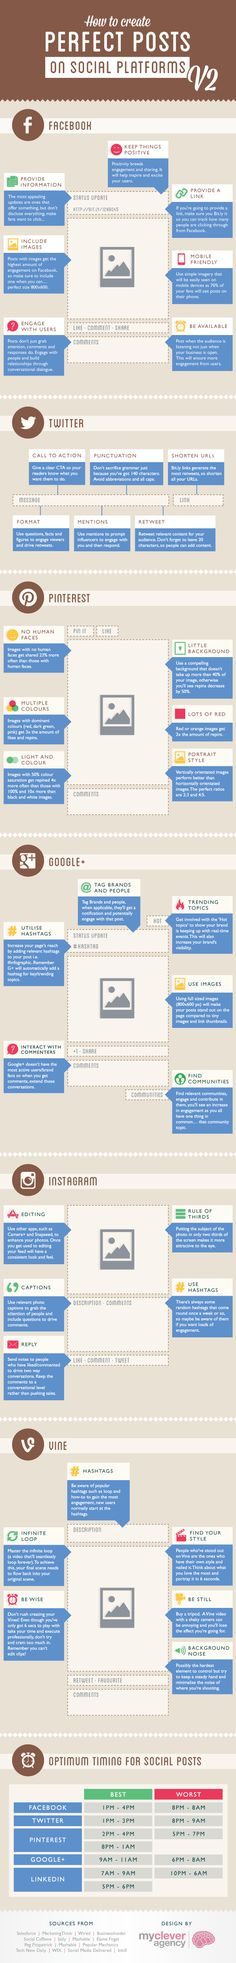 How To Create Perfect Vine, Instagram, Pinterest, Google+, Facebook & Twitter Posts: Version 2 [Infographic] - mycleveragency - Full Service Social